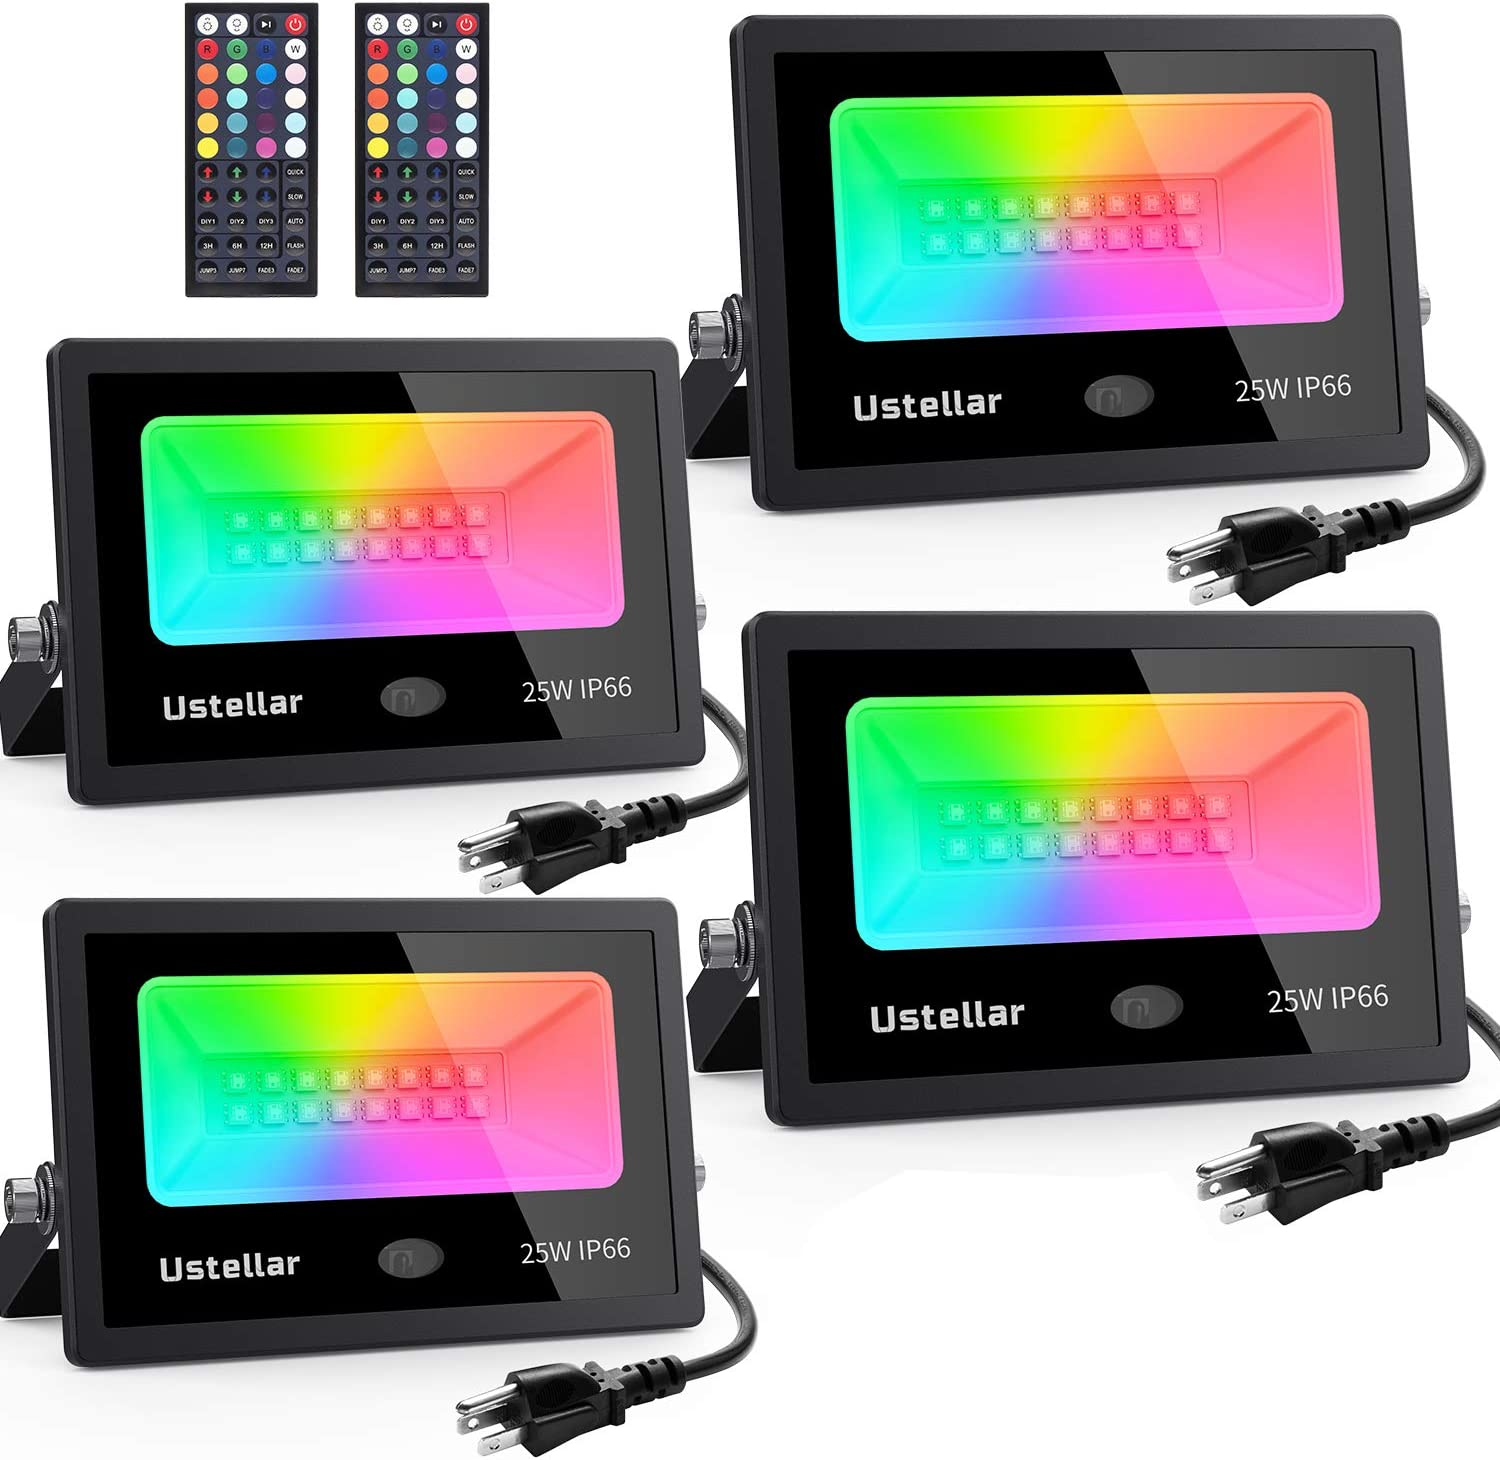 Ustellar 4 Pack 25W RGB LED Flood Lights Color Changing Indoor Outdoor Floodlights Dimmable Party Uplighting Landscape led Wall Wash Halloween Christmas Decoration Uplight Spotlight Stage Lighting